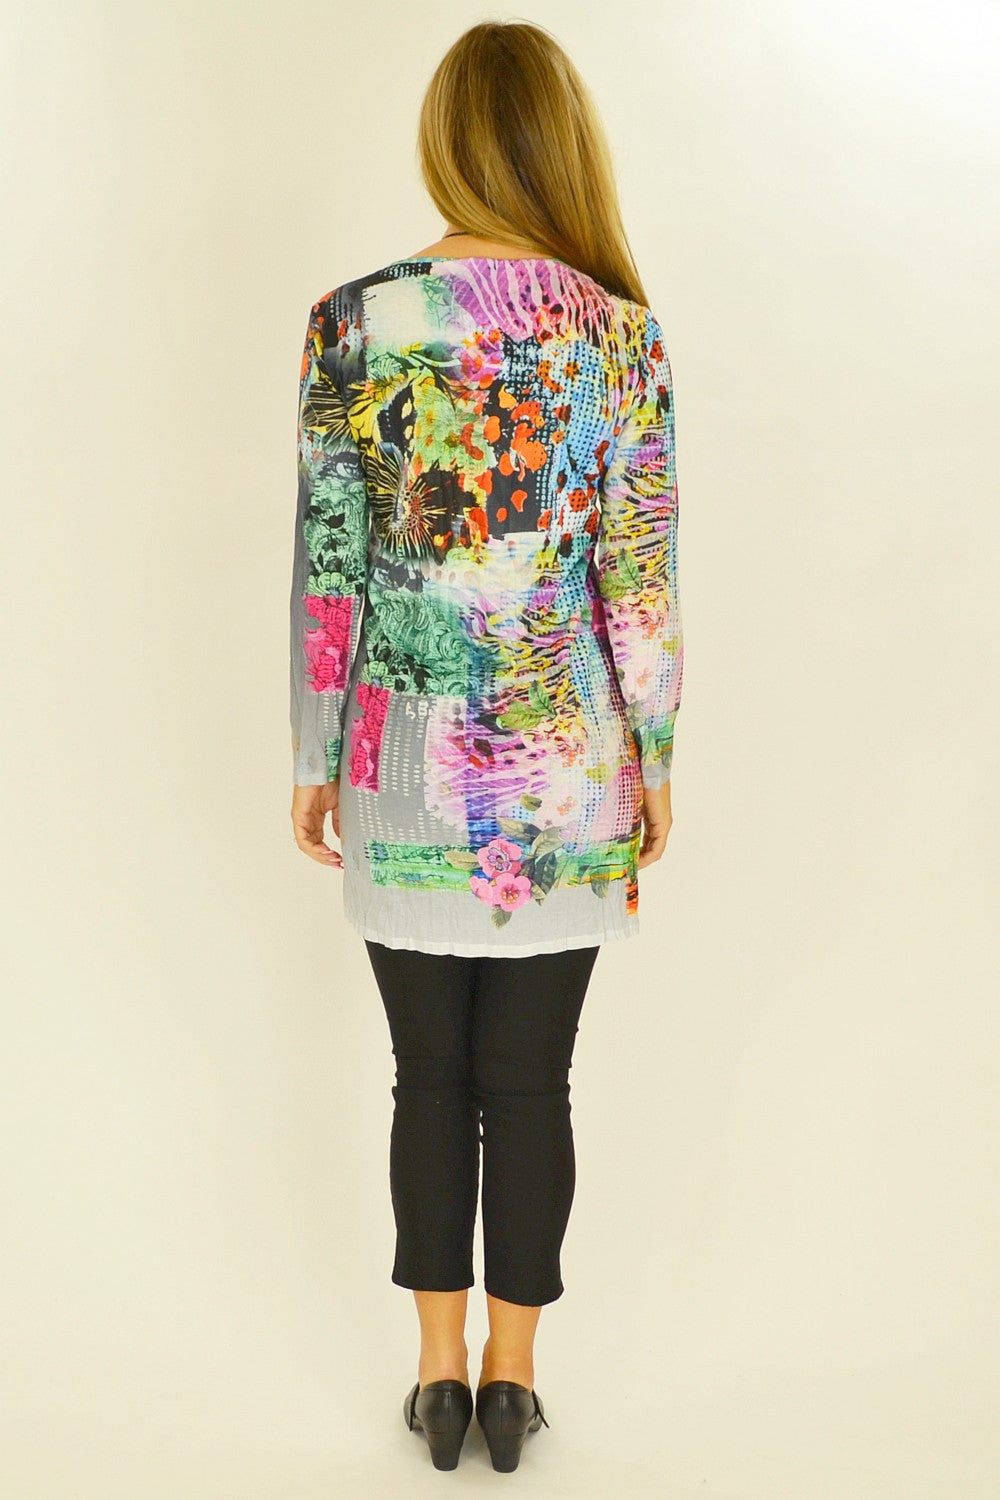 Tanyas Floral Tunic - at I Love Tunics @ www.ilovetunics.com = Number One! Tunics Destination